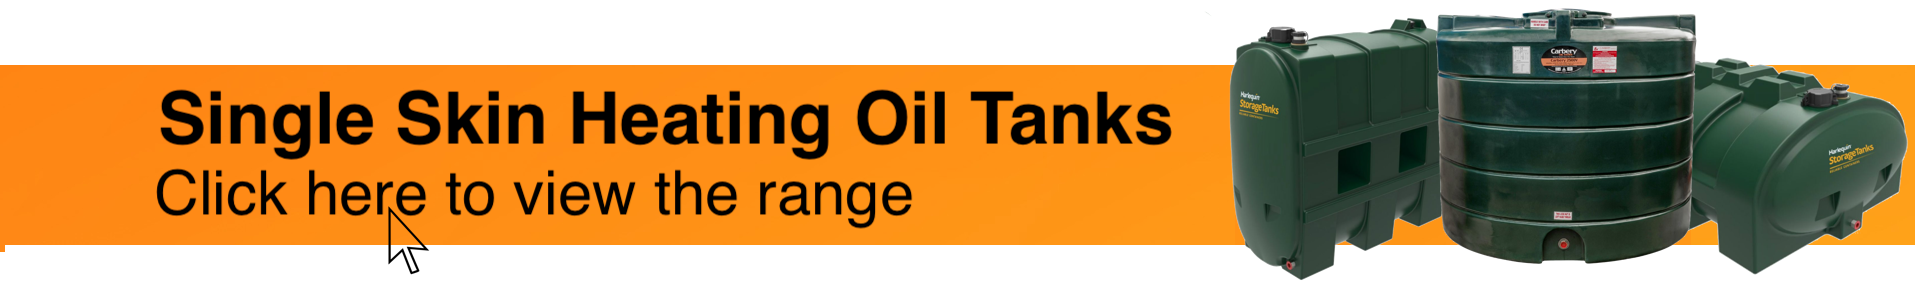 Photograph of Harlequin 1100SL Slimline Single Skin Oil Tank, Carbery 1350V Vertical Single Skin Oil Tank and Harlequin 1200LP Low Profile Single Skin Oil Tank on an orange background. Accompanying text encourages visitors to view Fuel Tank Store's range of Single Skin Oil Tanks.